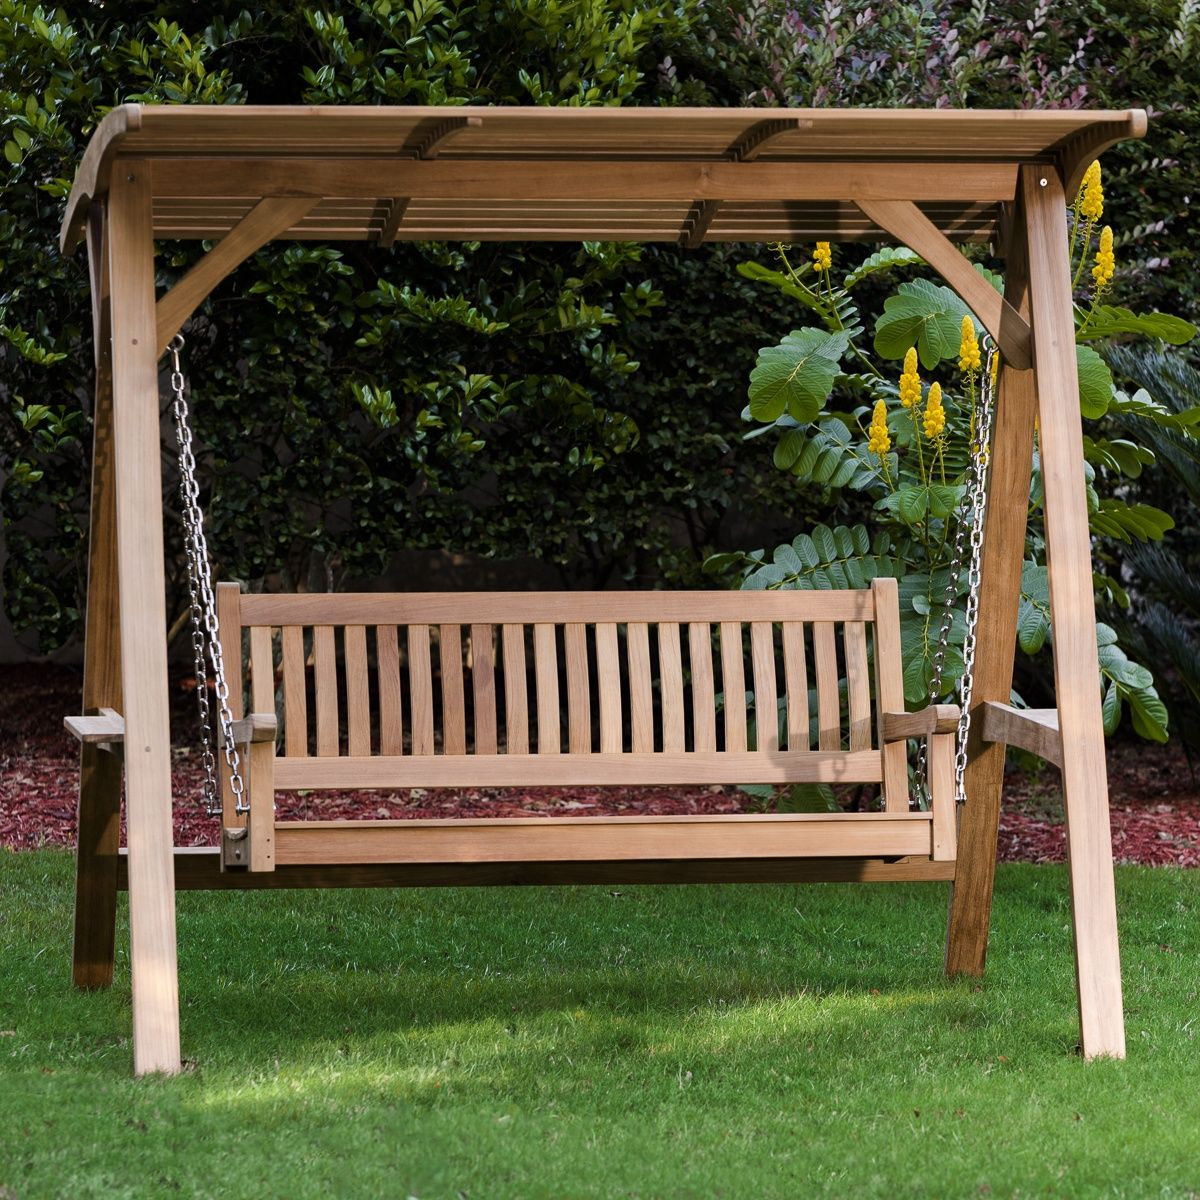 Veranda Swinging Bench With Canopy Westminster Teak Garden Swing Seat Garden Swing Wooden Garden Benches